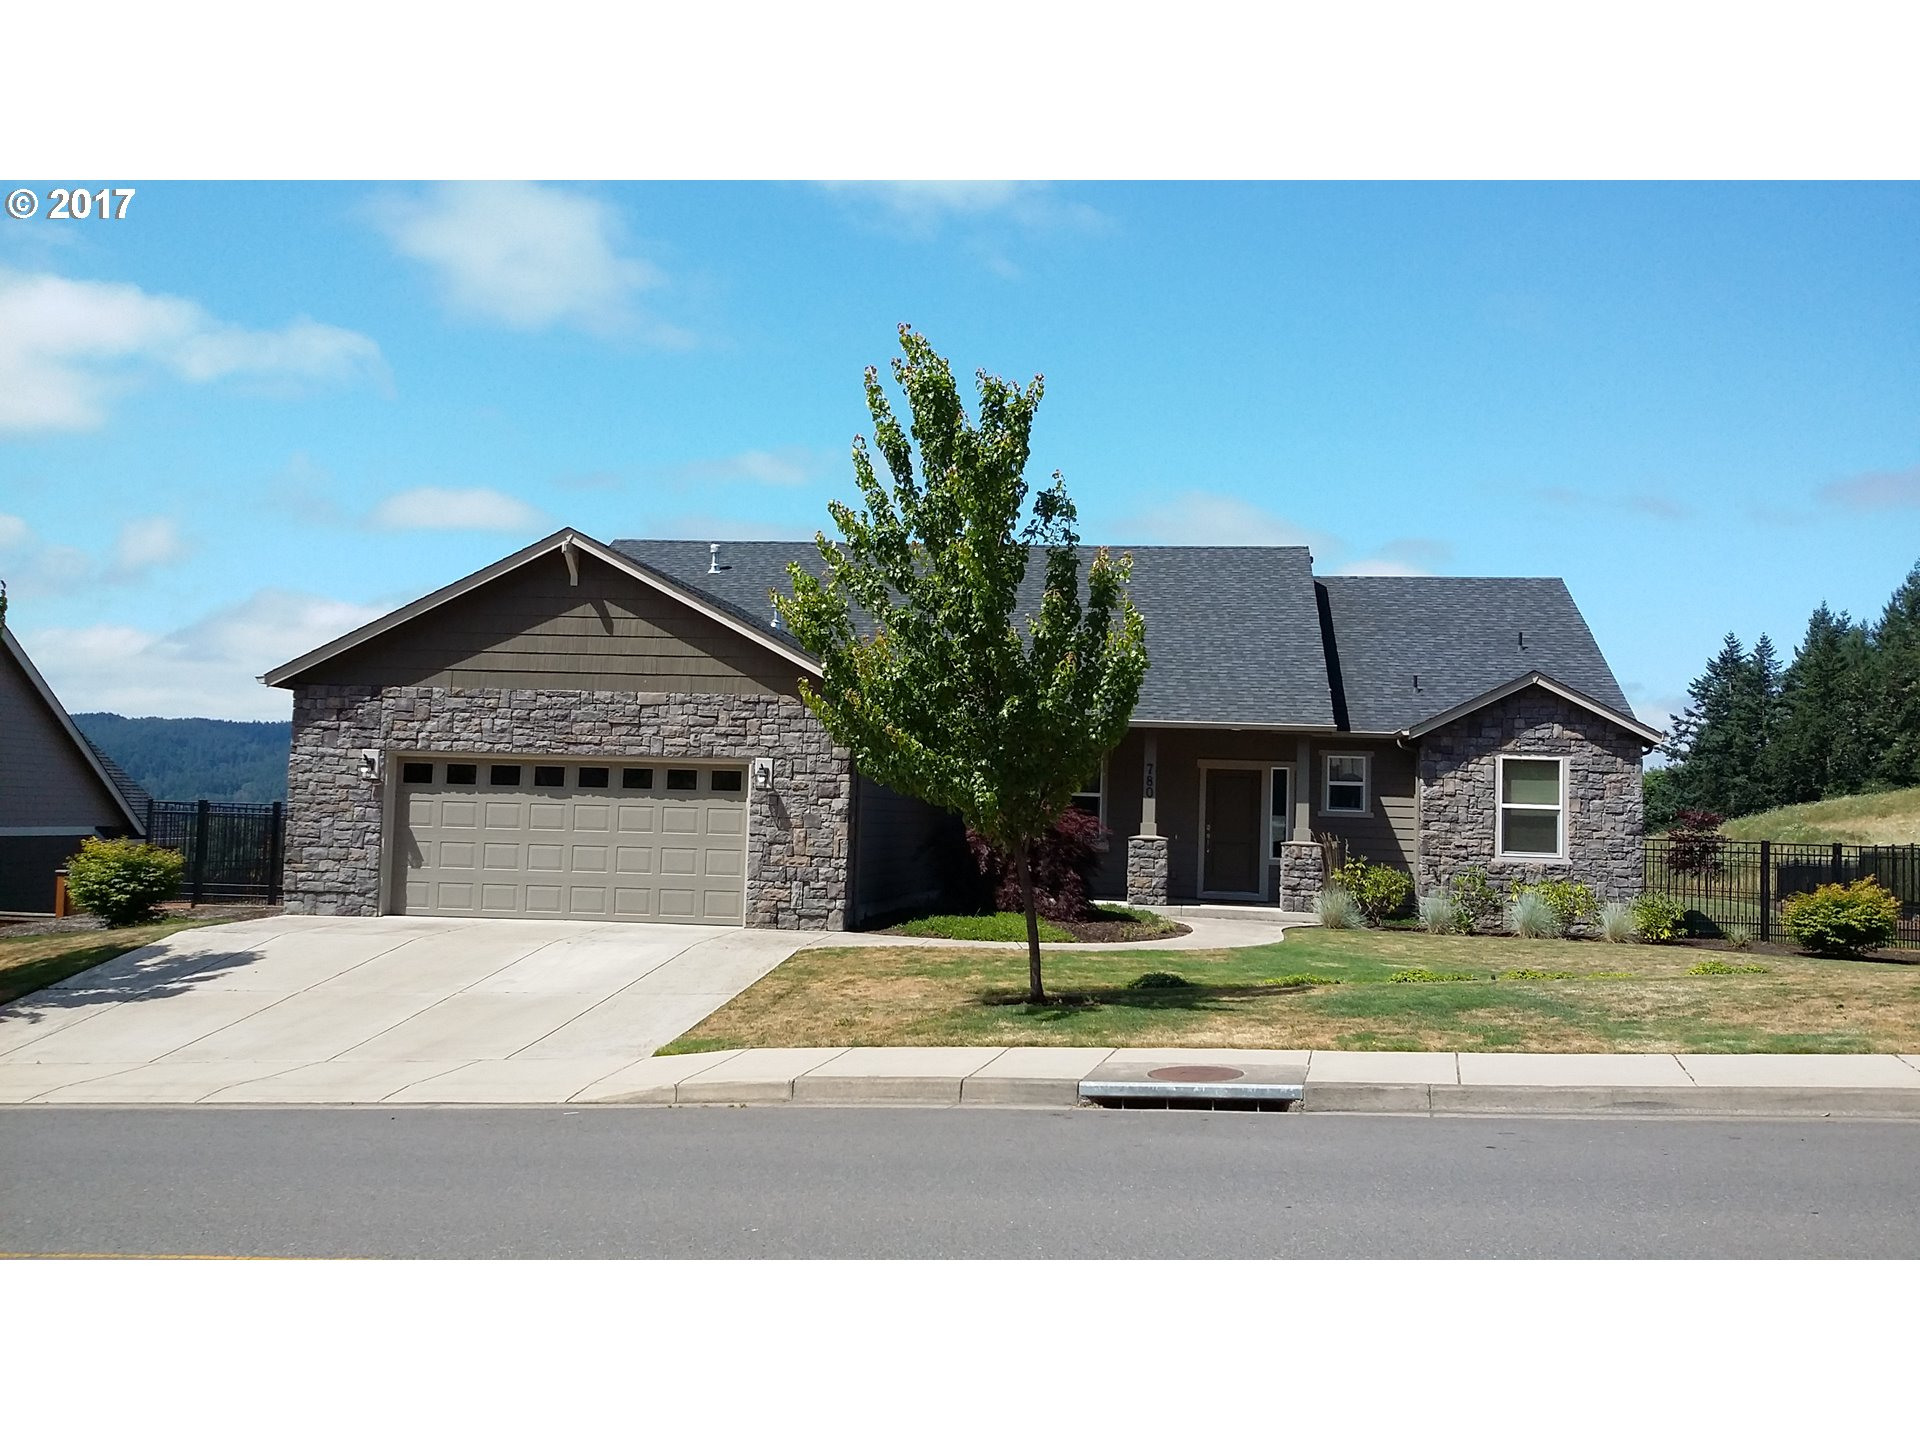 780 MOUNTAINGATE DR, Springfield, OR 97478